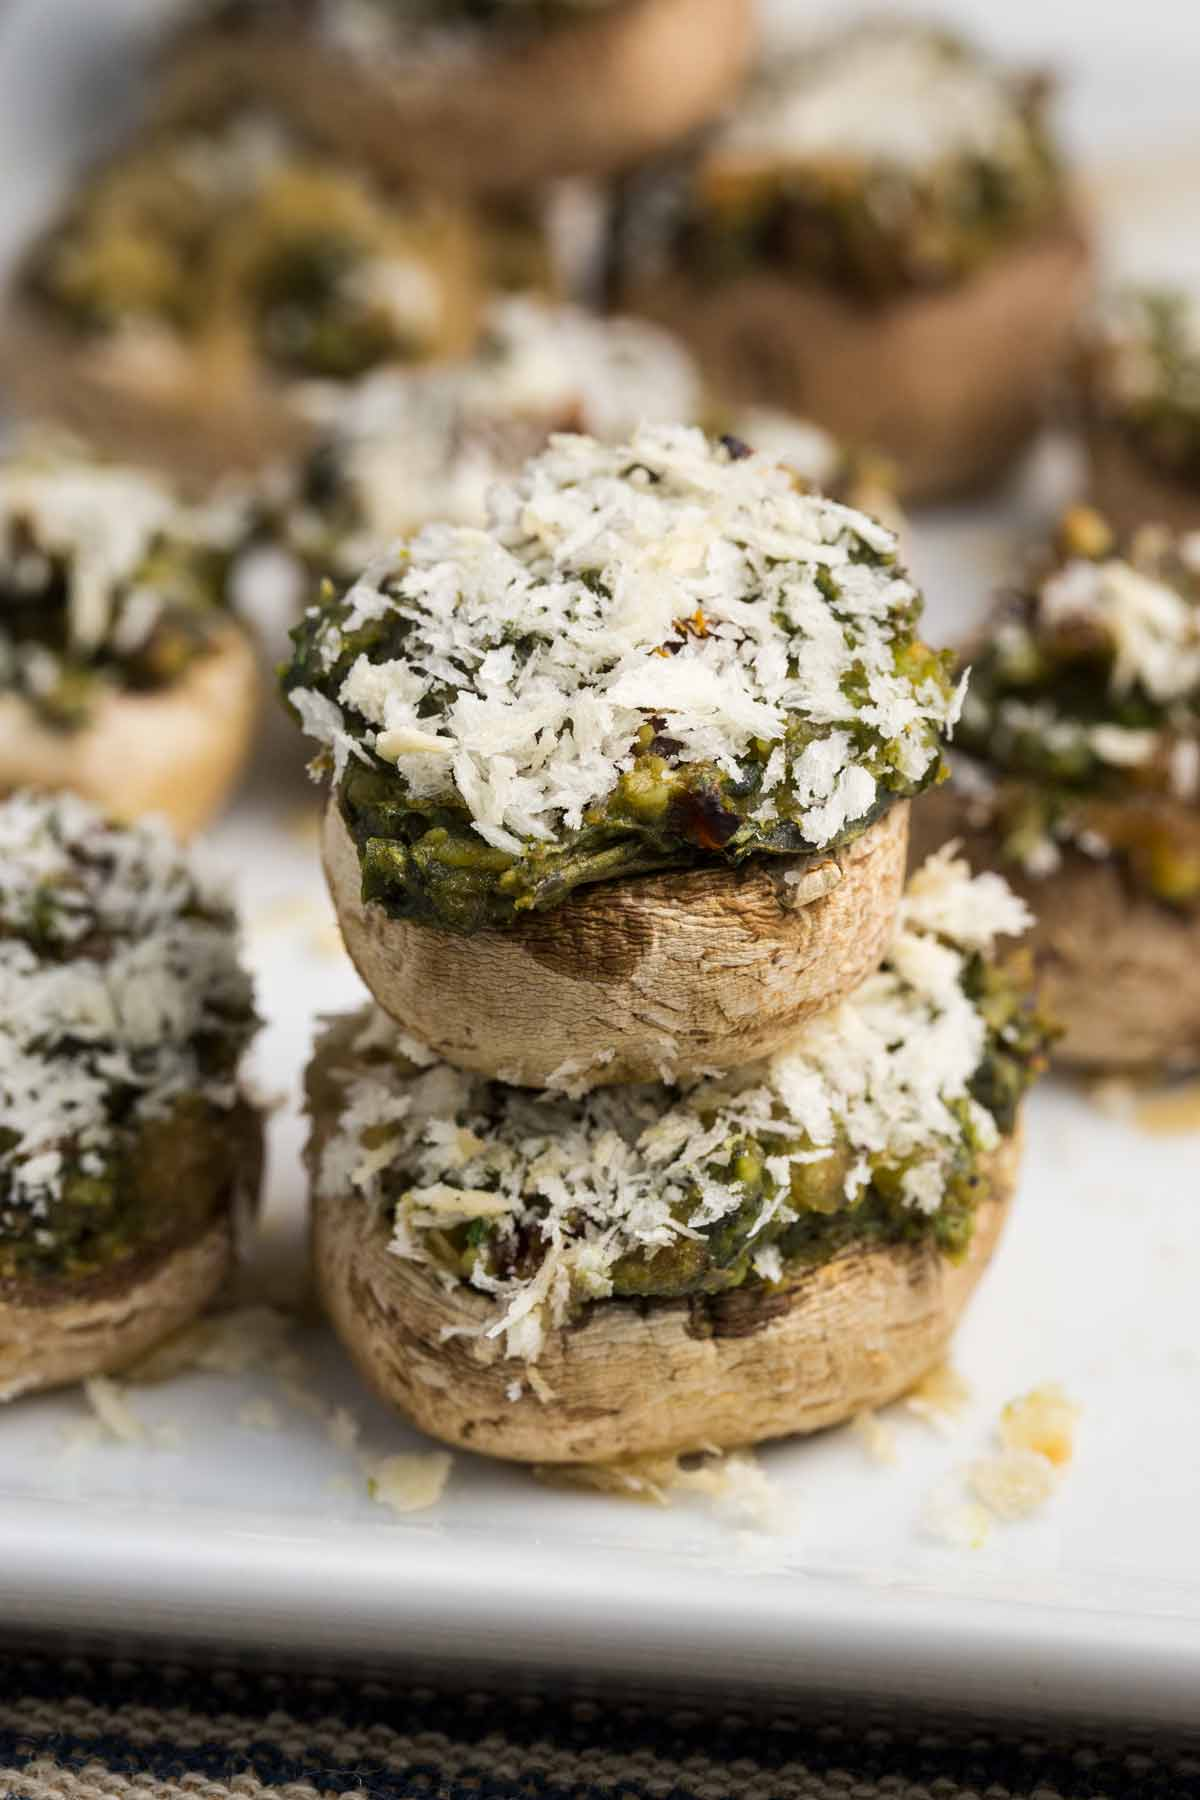 These Pesto Stuffed Mushrooms are oil and dairy free, and super easy to whip up for company, or an appetizer for the family.